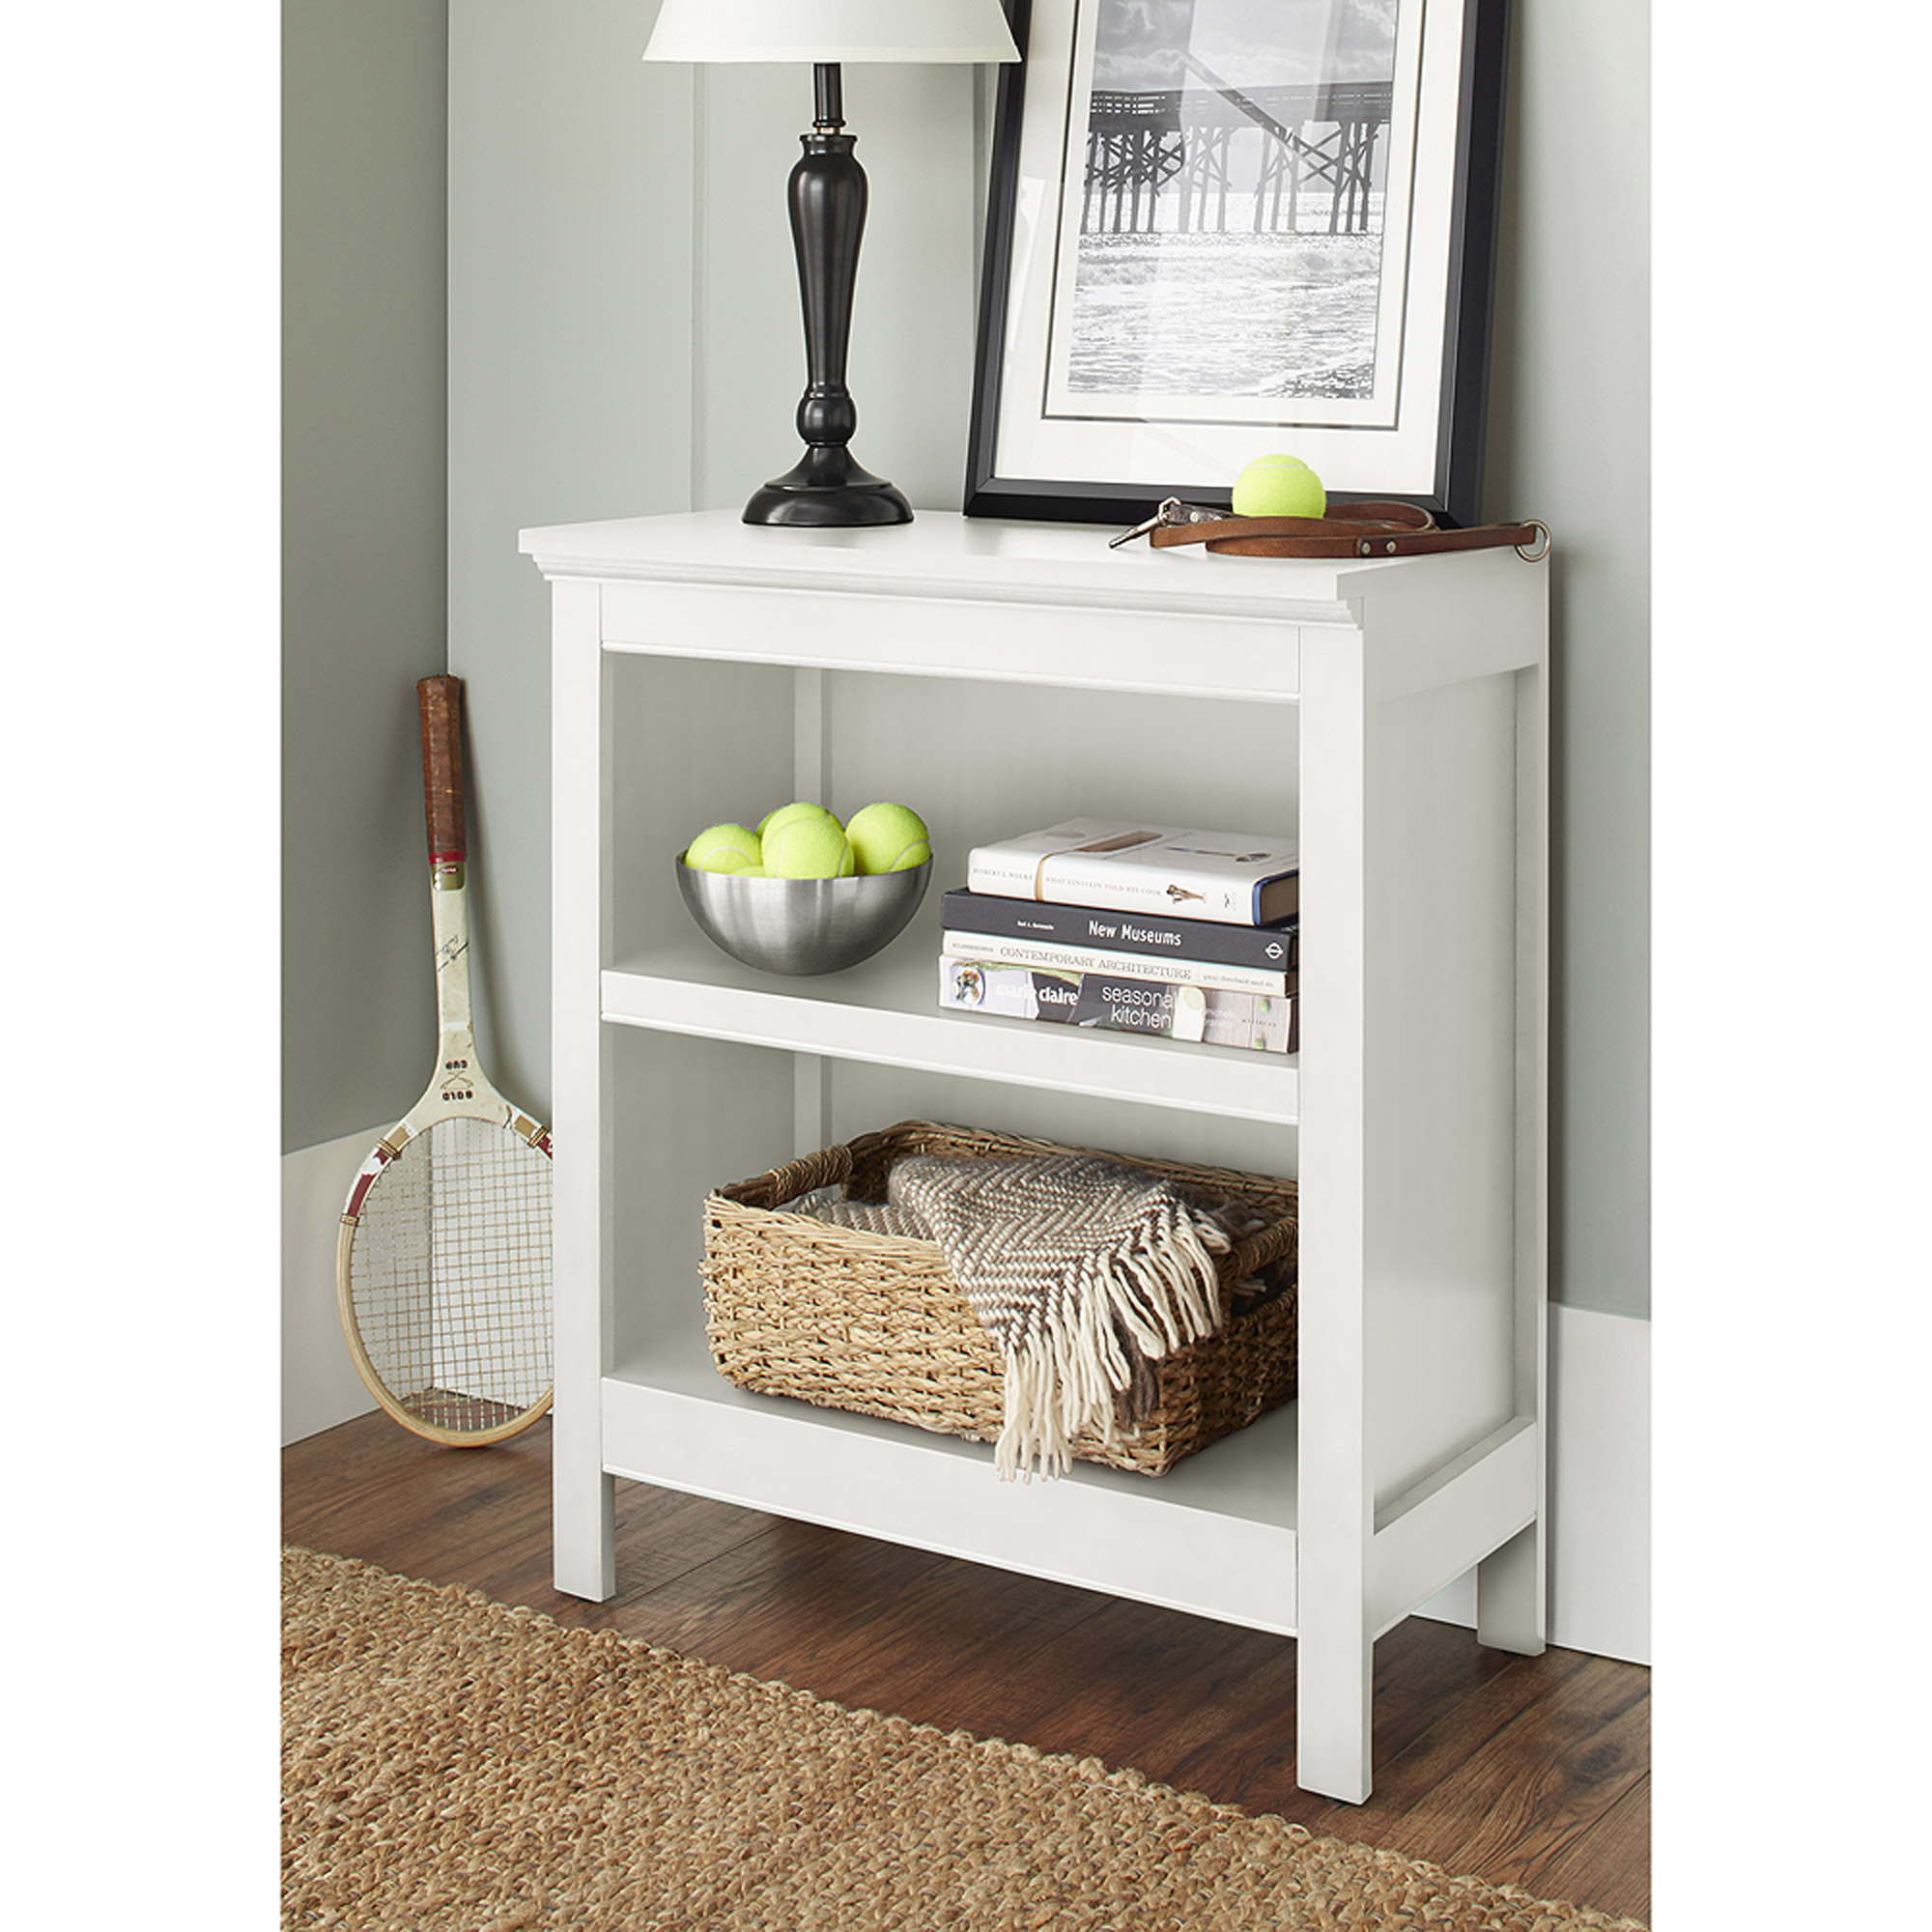 Don't sacrifice style to add extra storage in your home. We've got you covered with a Sauder cubby bookcase for storage and display. From the Barrister Lane storage furniture collection, this bookcase features 10 storage cubbyholes for you to organize, store and display your home essentials.